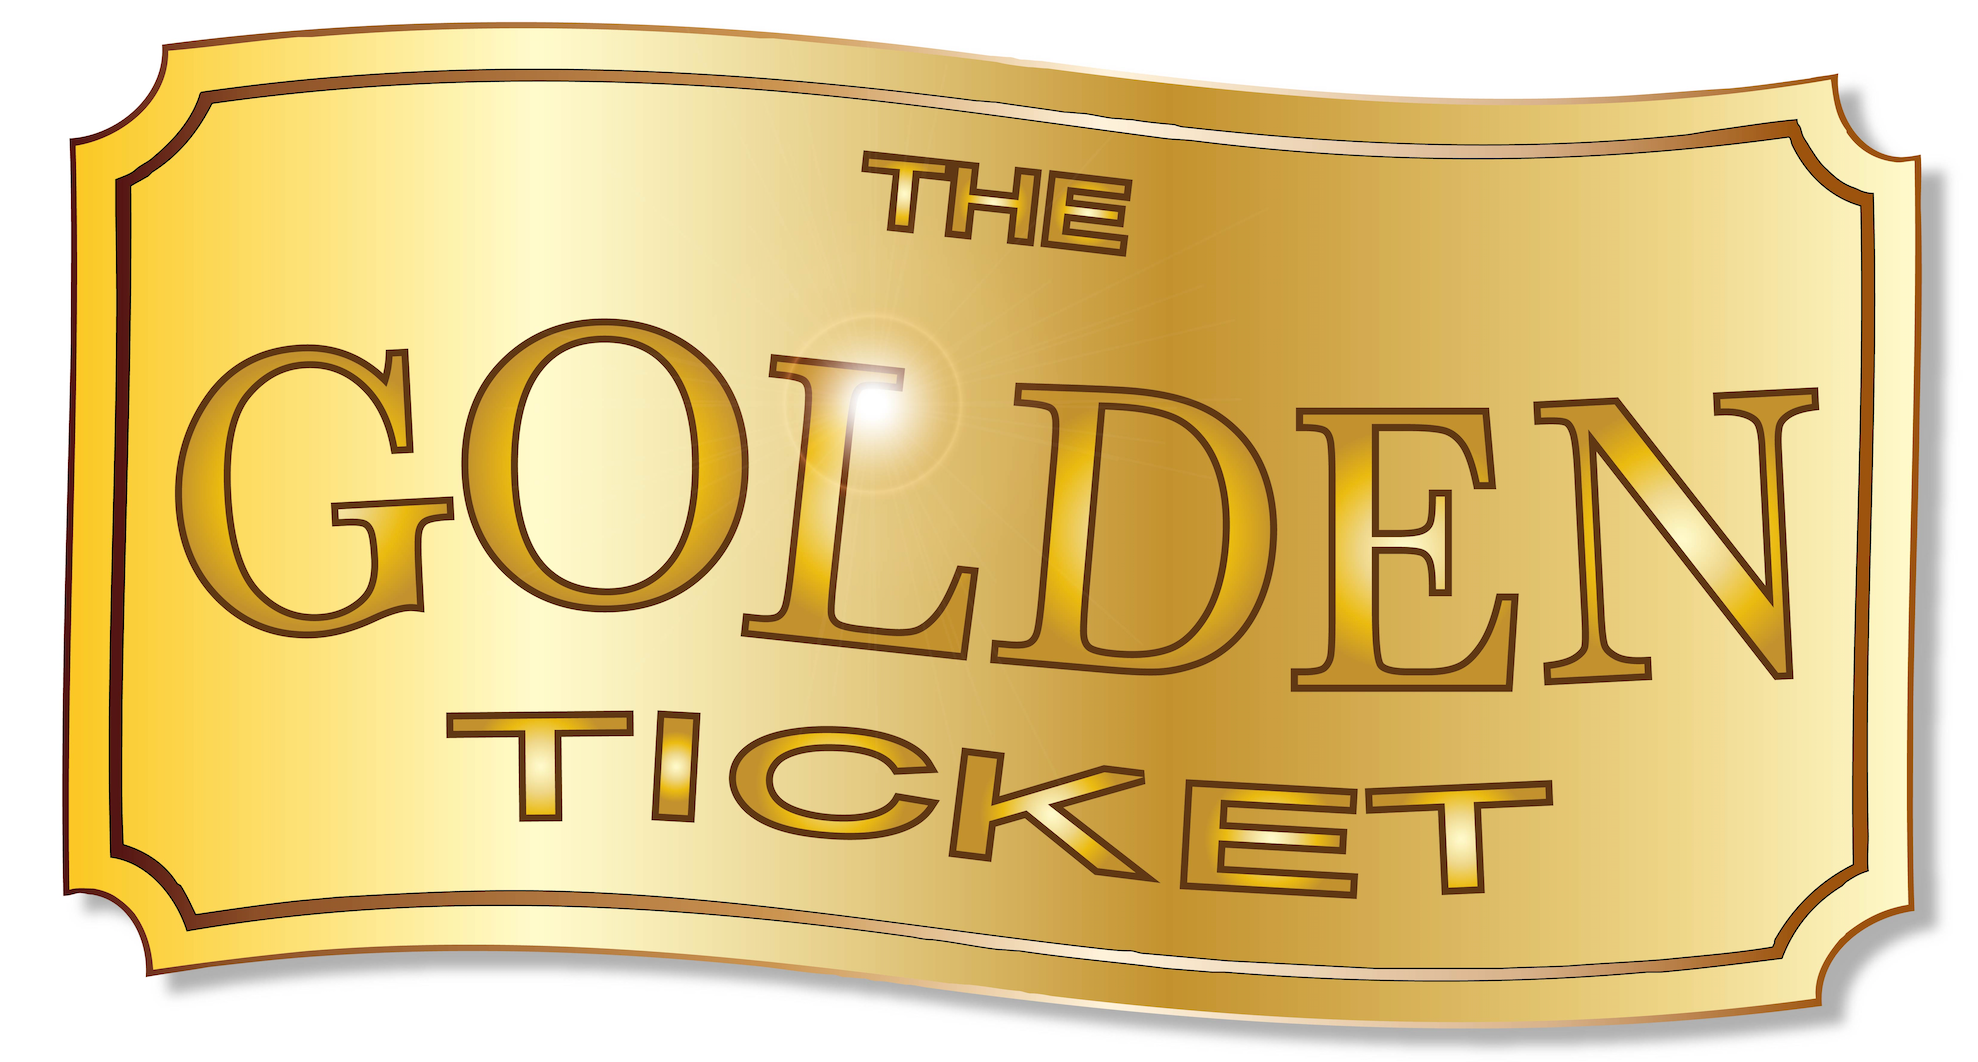 The CMD Golden Ticket